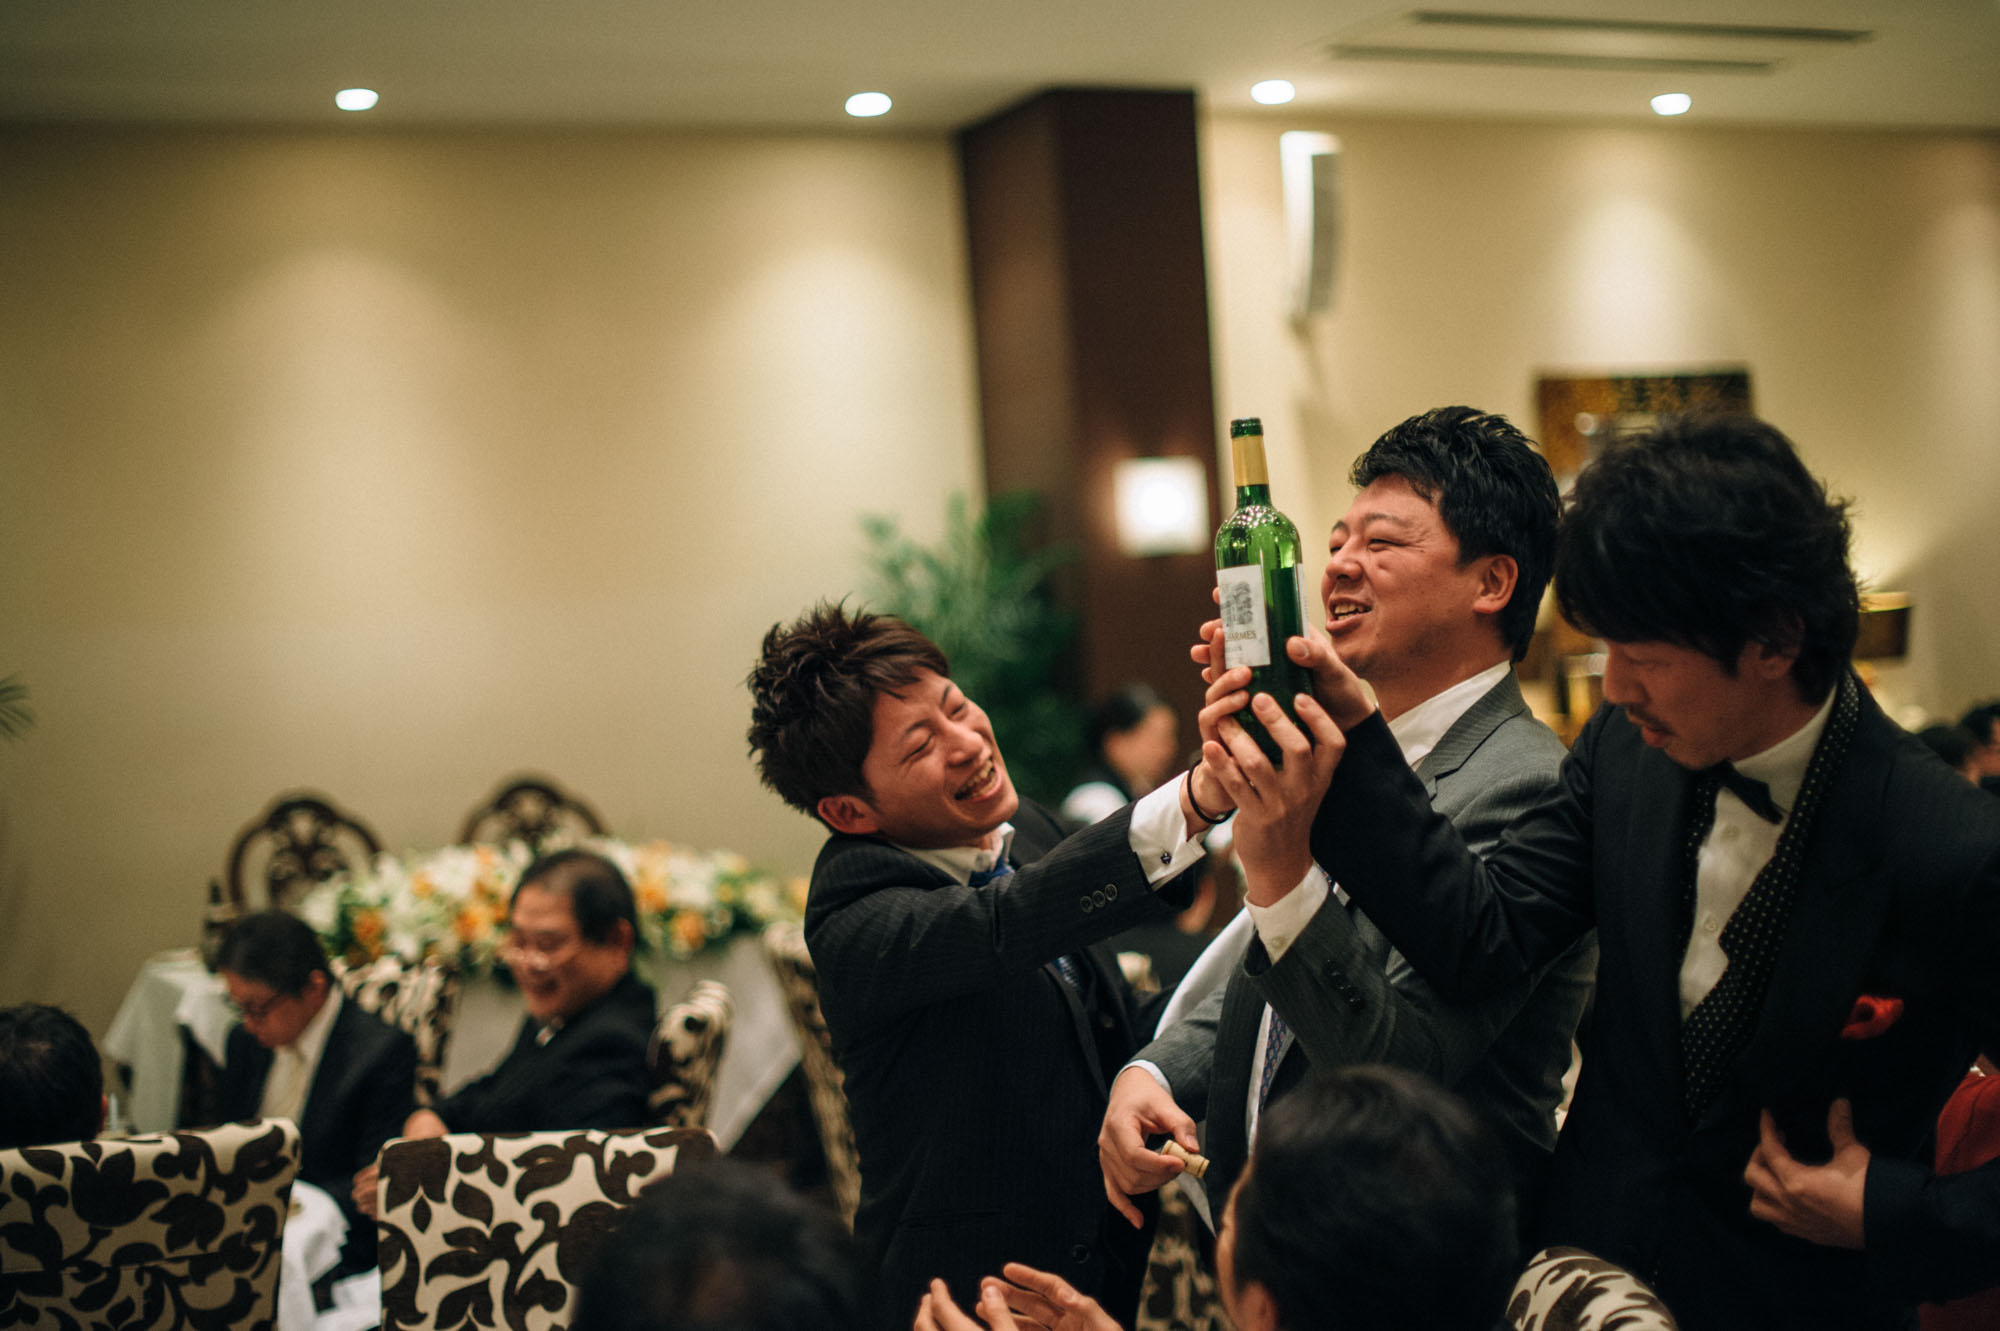 nagoya wedding107